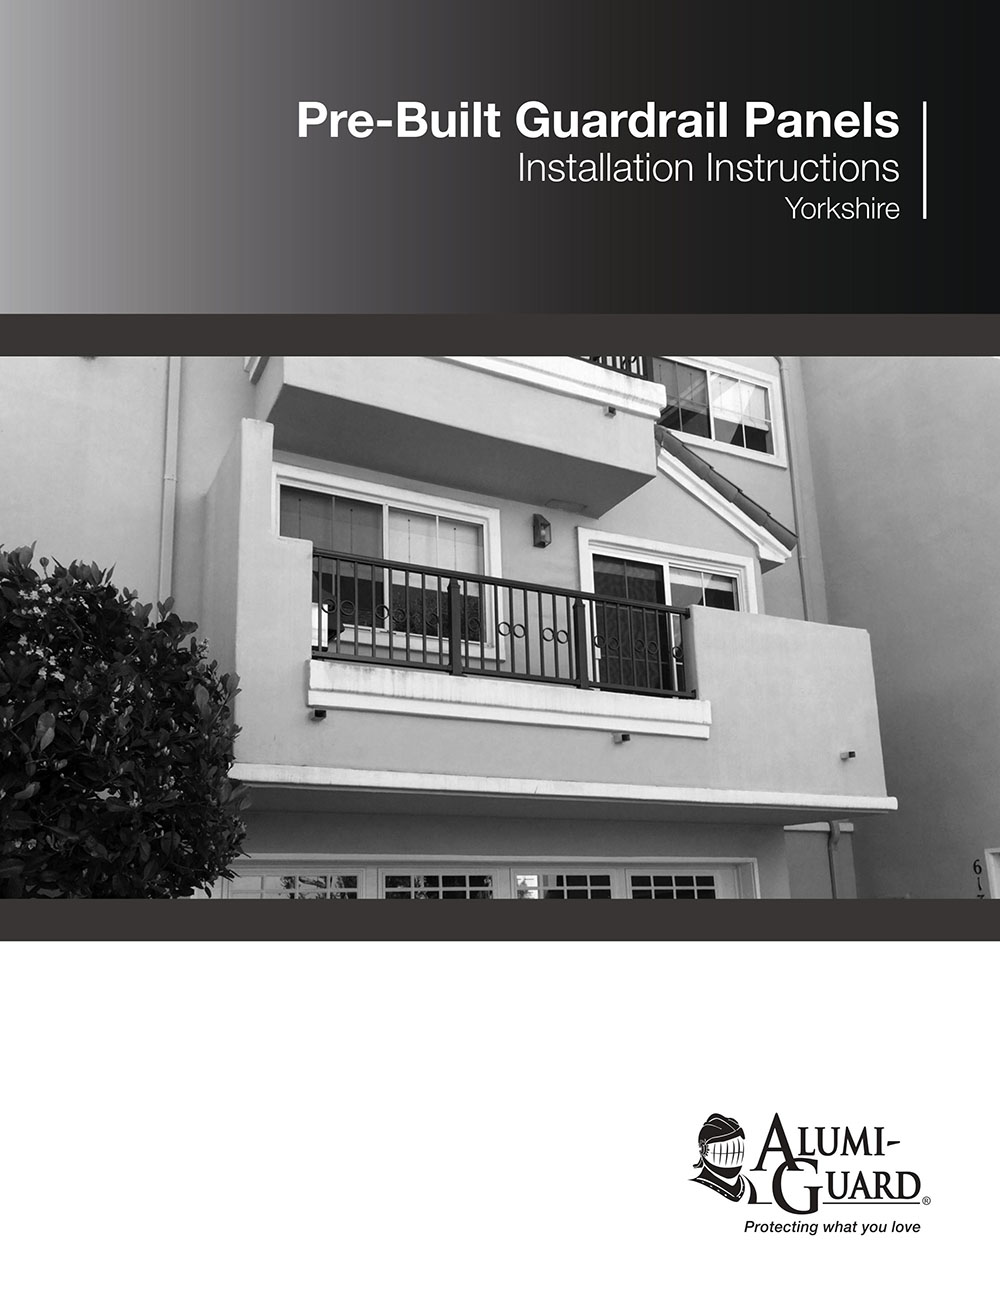 Pre-Built-Guardrail Installation Brochure